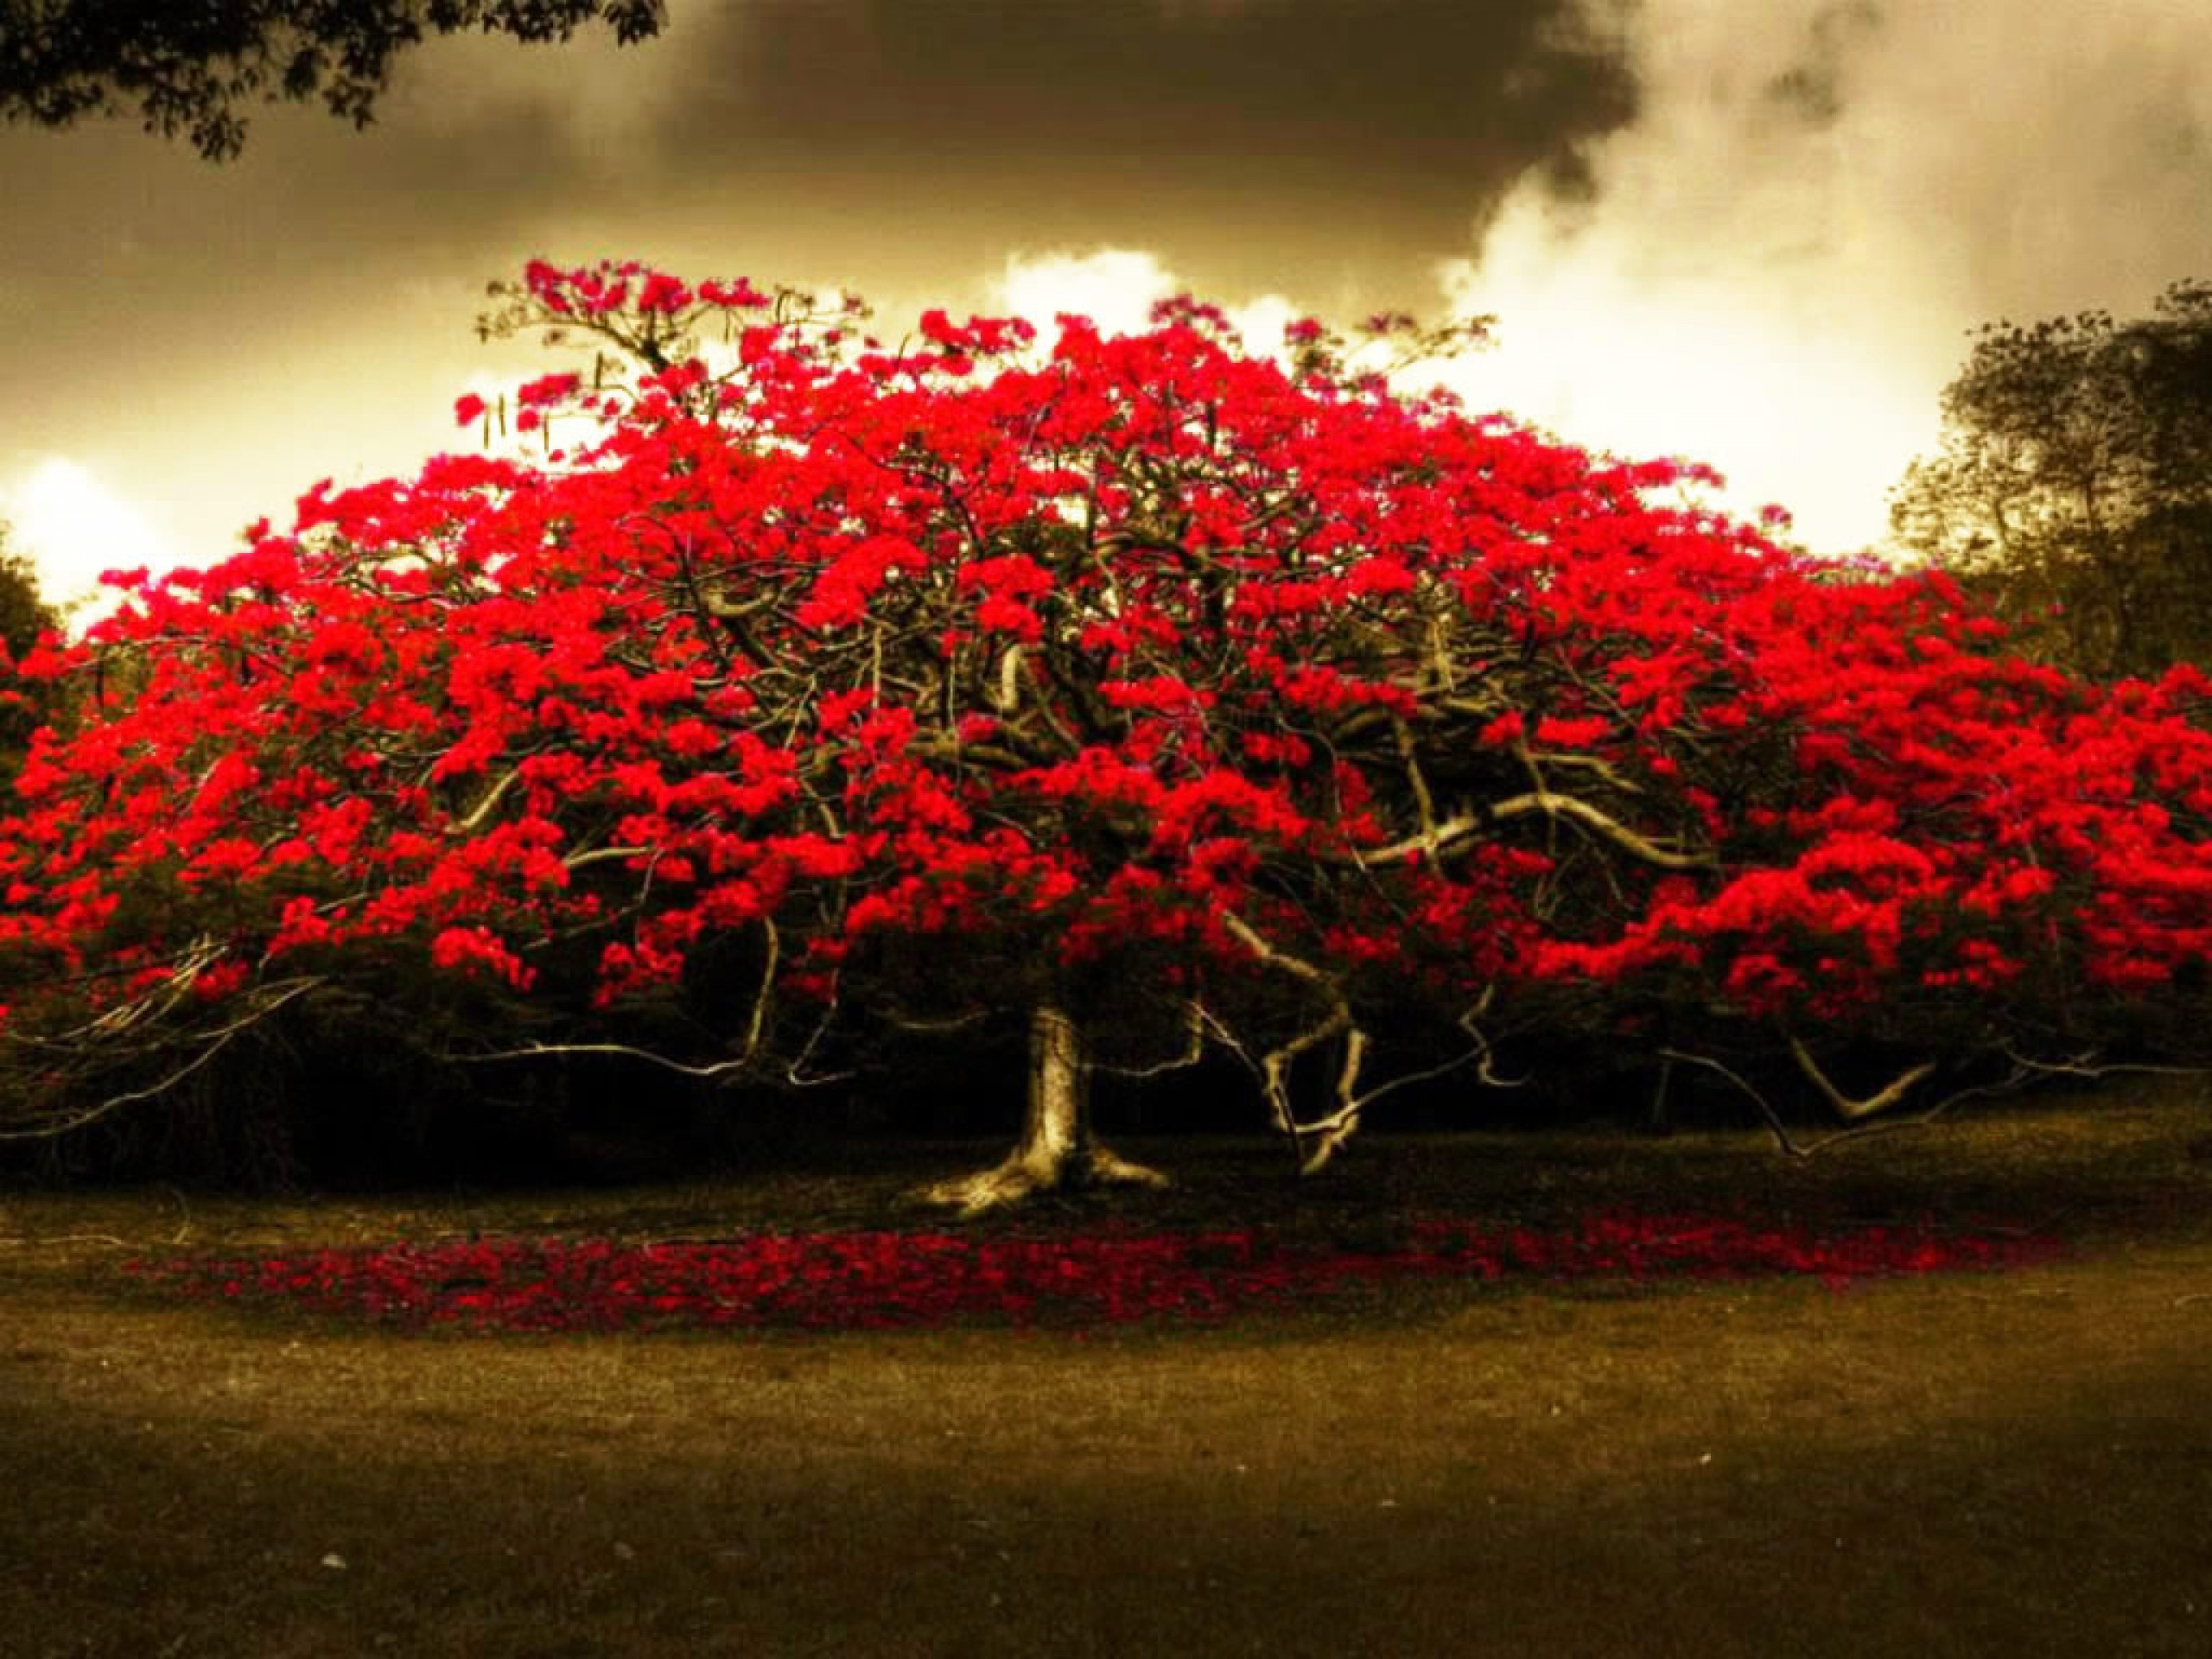 2560x1920 HD Widescreen Red Tree Wallpapers Widescreen - HD Wallpapers